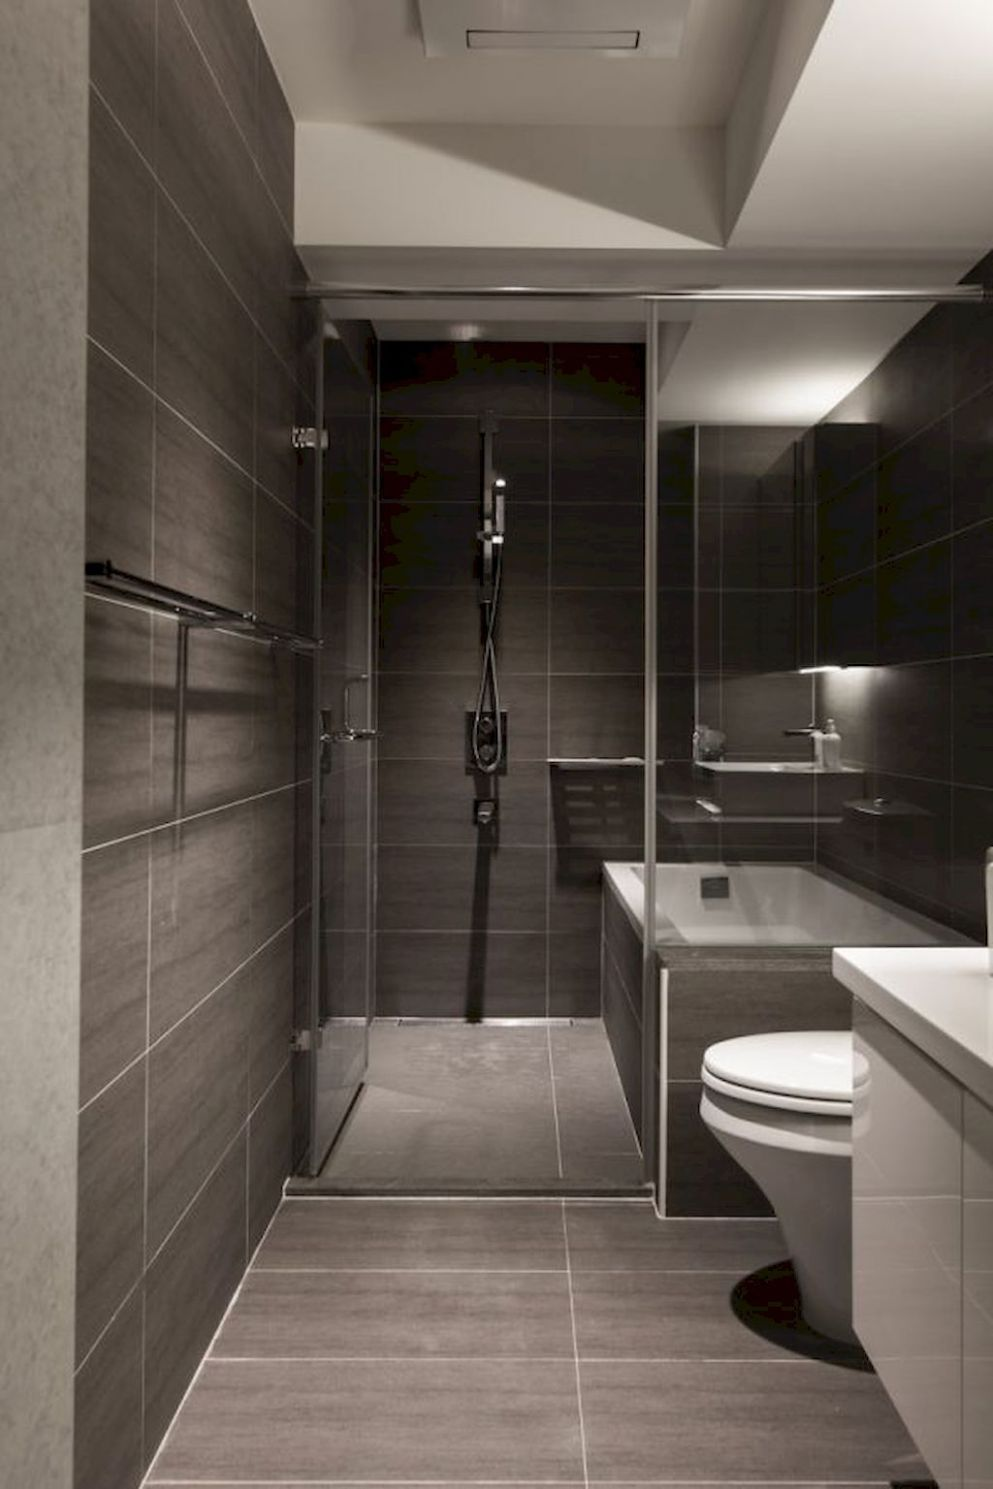 Inspired Modern Apartment Decor (With images) | Bathroom design ..